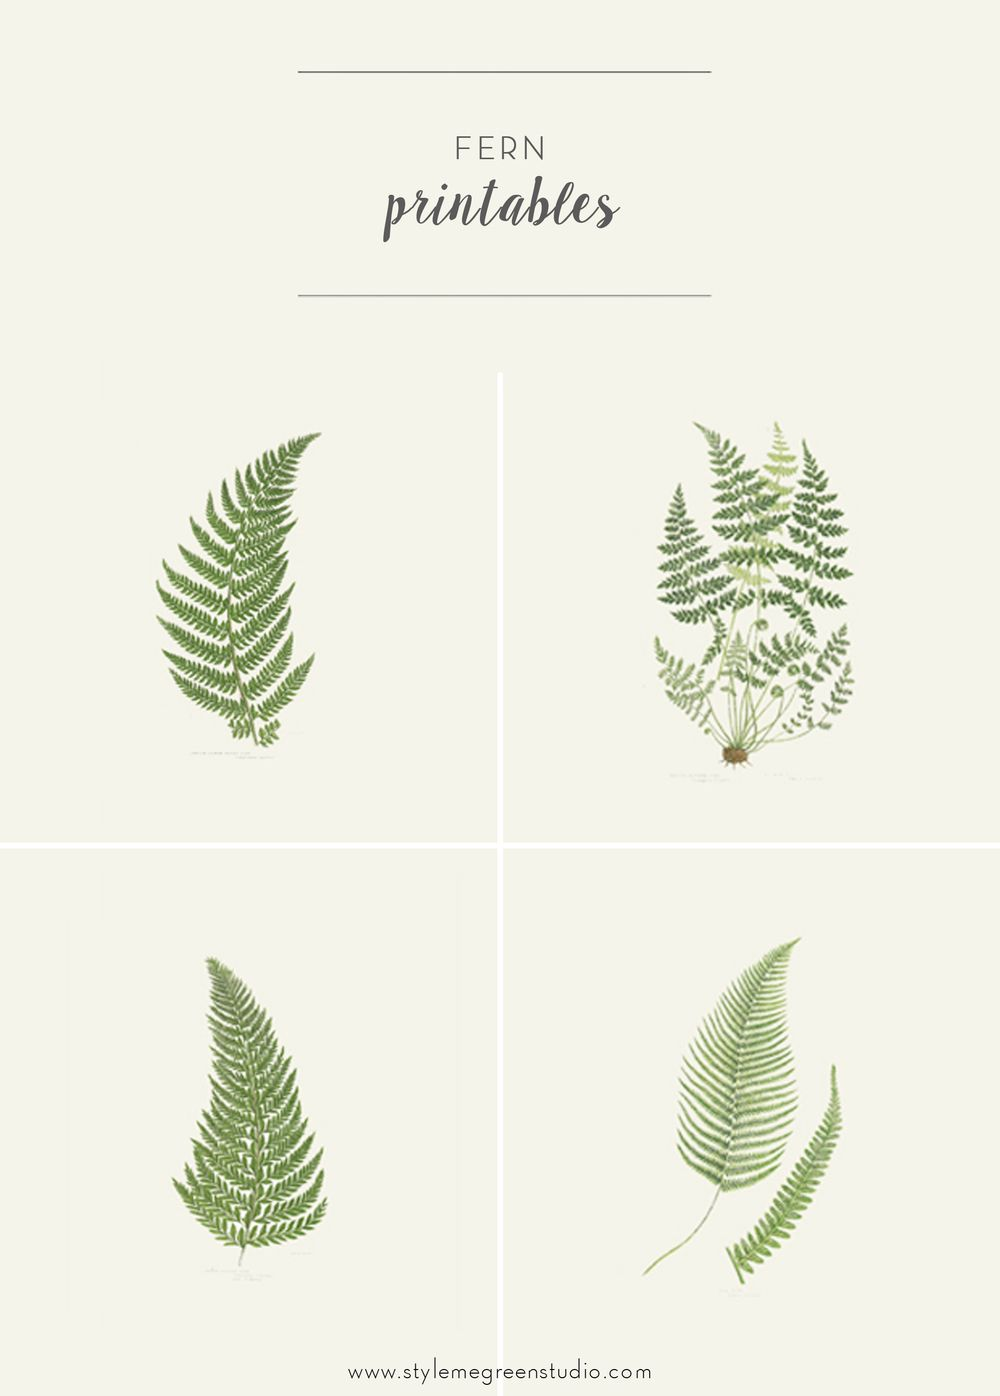 graphic regarding Printable Prints named FERN Selection Cost-free PRINTABLES Do-It-On your own Tasks